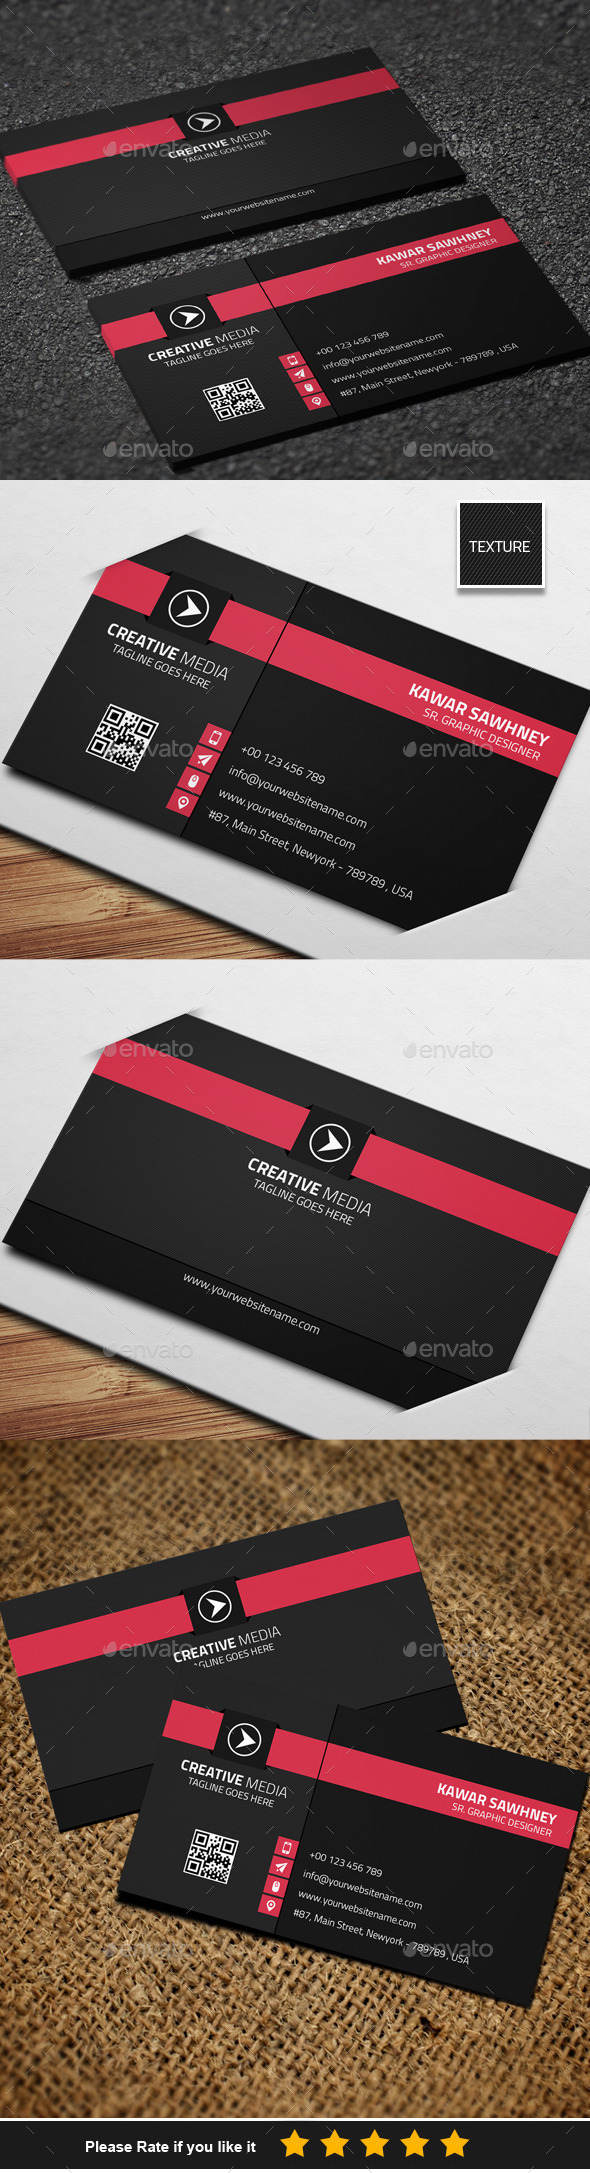 GraphicRiver Corporate Business Card 11 8791168